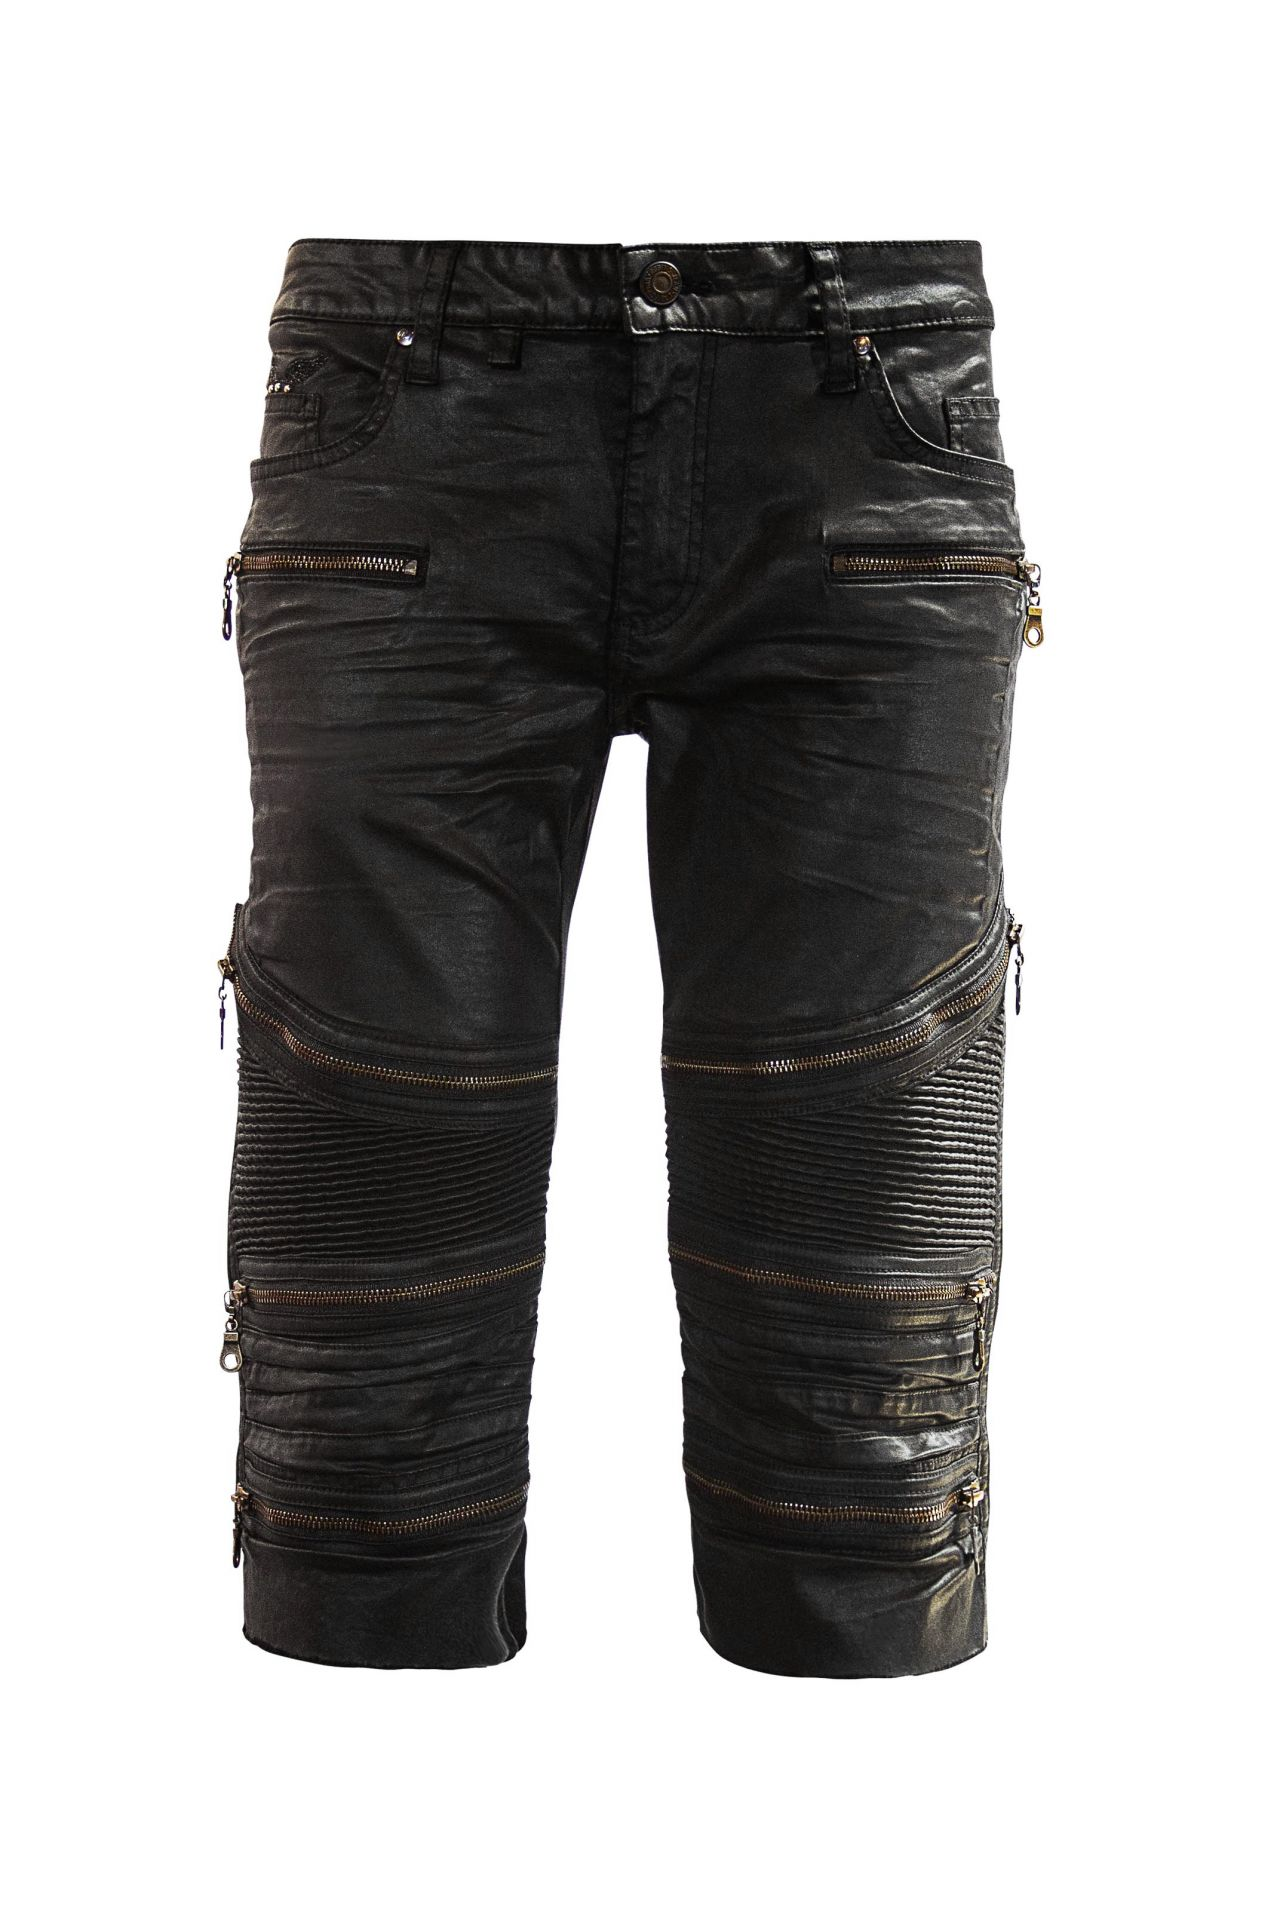 DY BIKER SHORTS IN BLACK